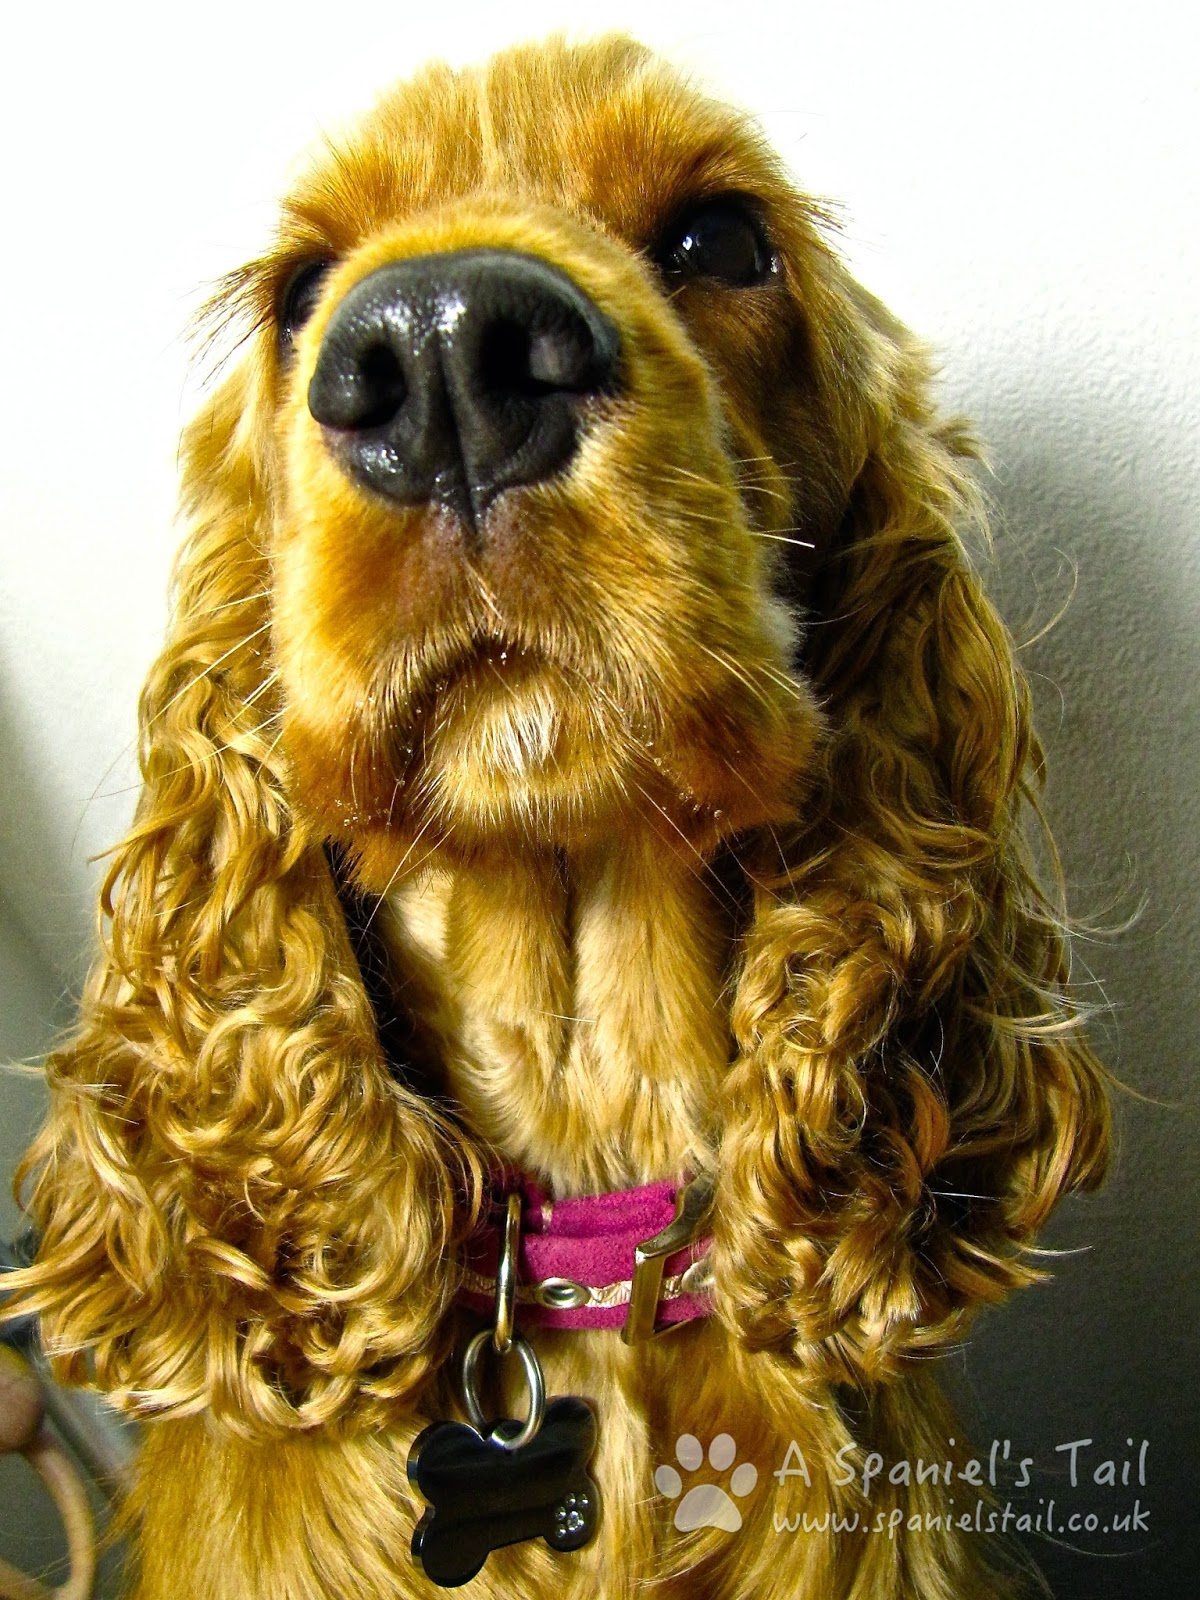 A Spaniels Tail Dog identification and the law